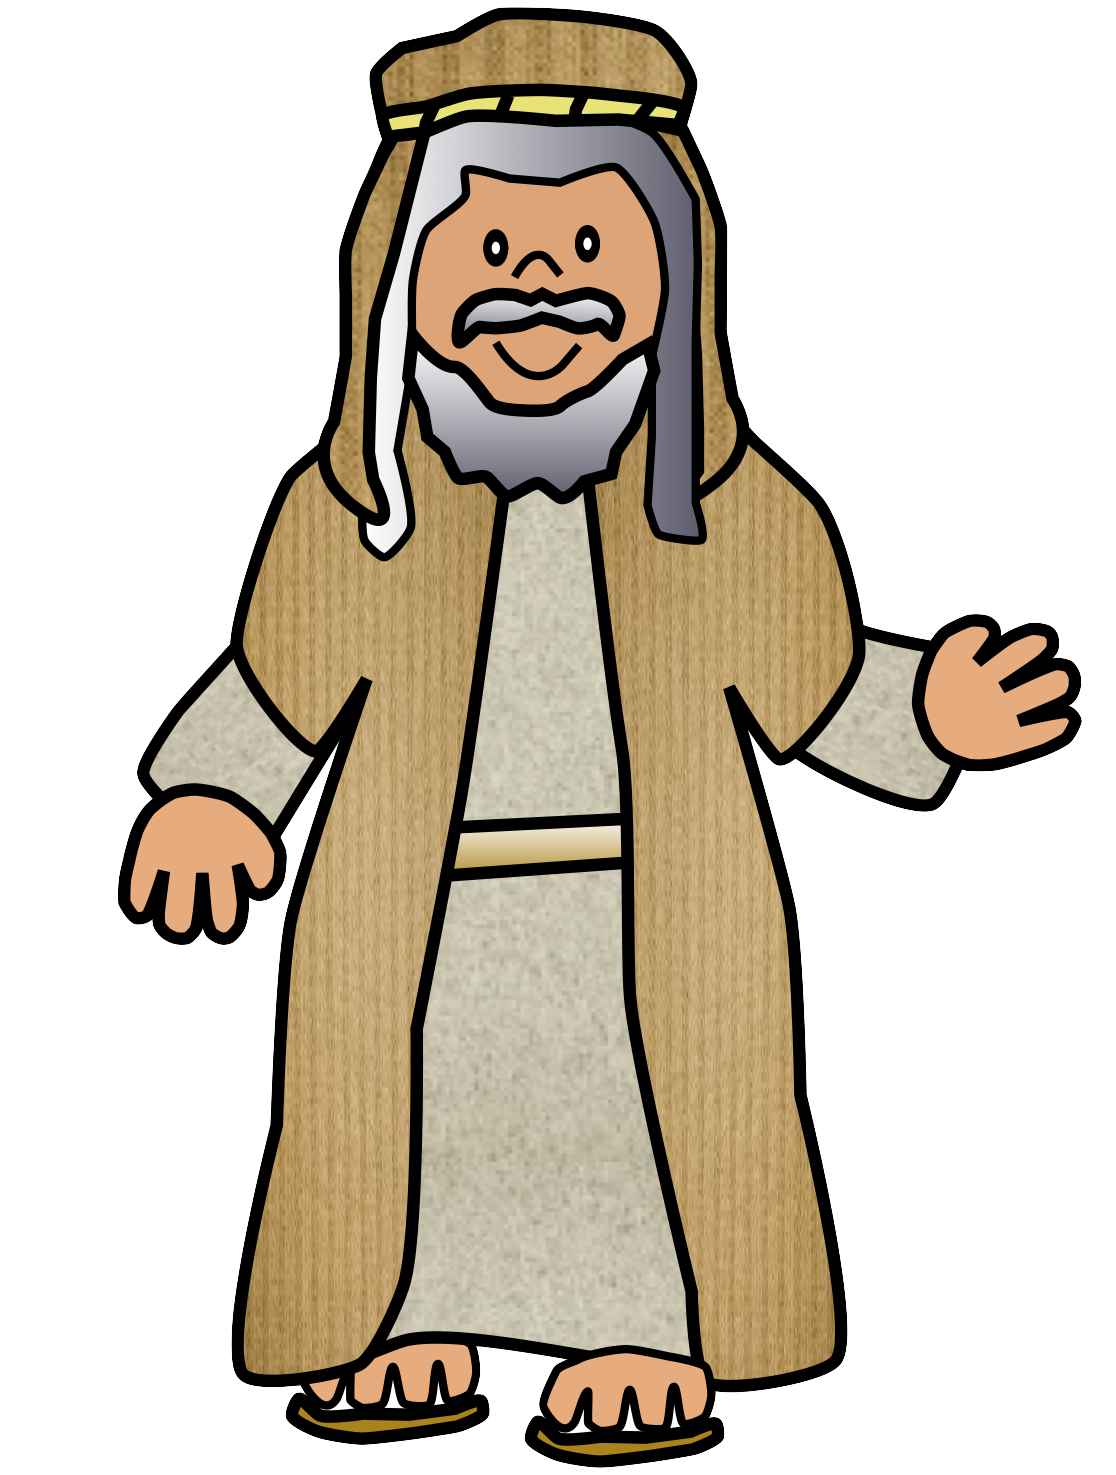 Microsoft clipart school graphic library download clip art of bible characters - Google Search | CLIP ART PEOPLE FOR ... graphic library download